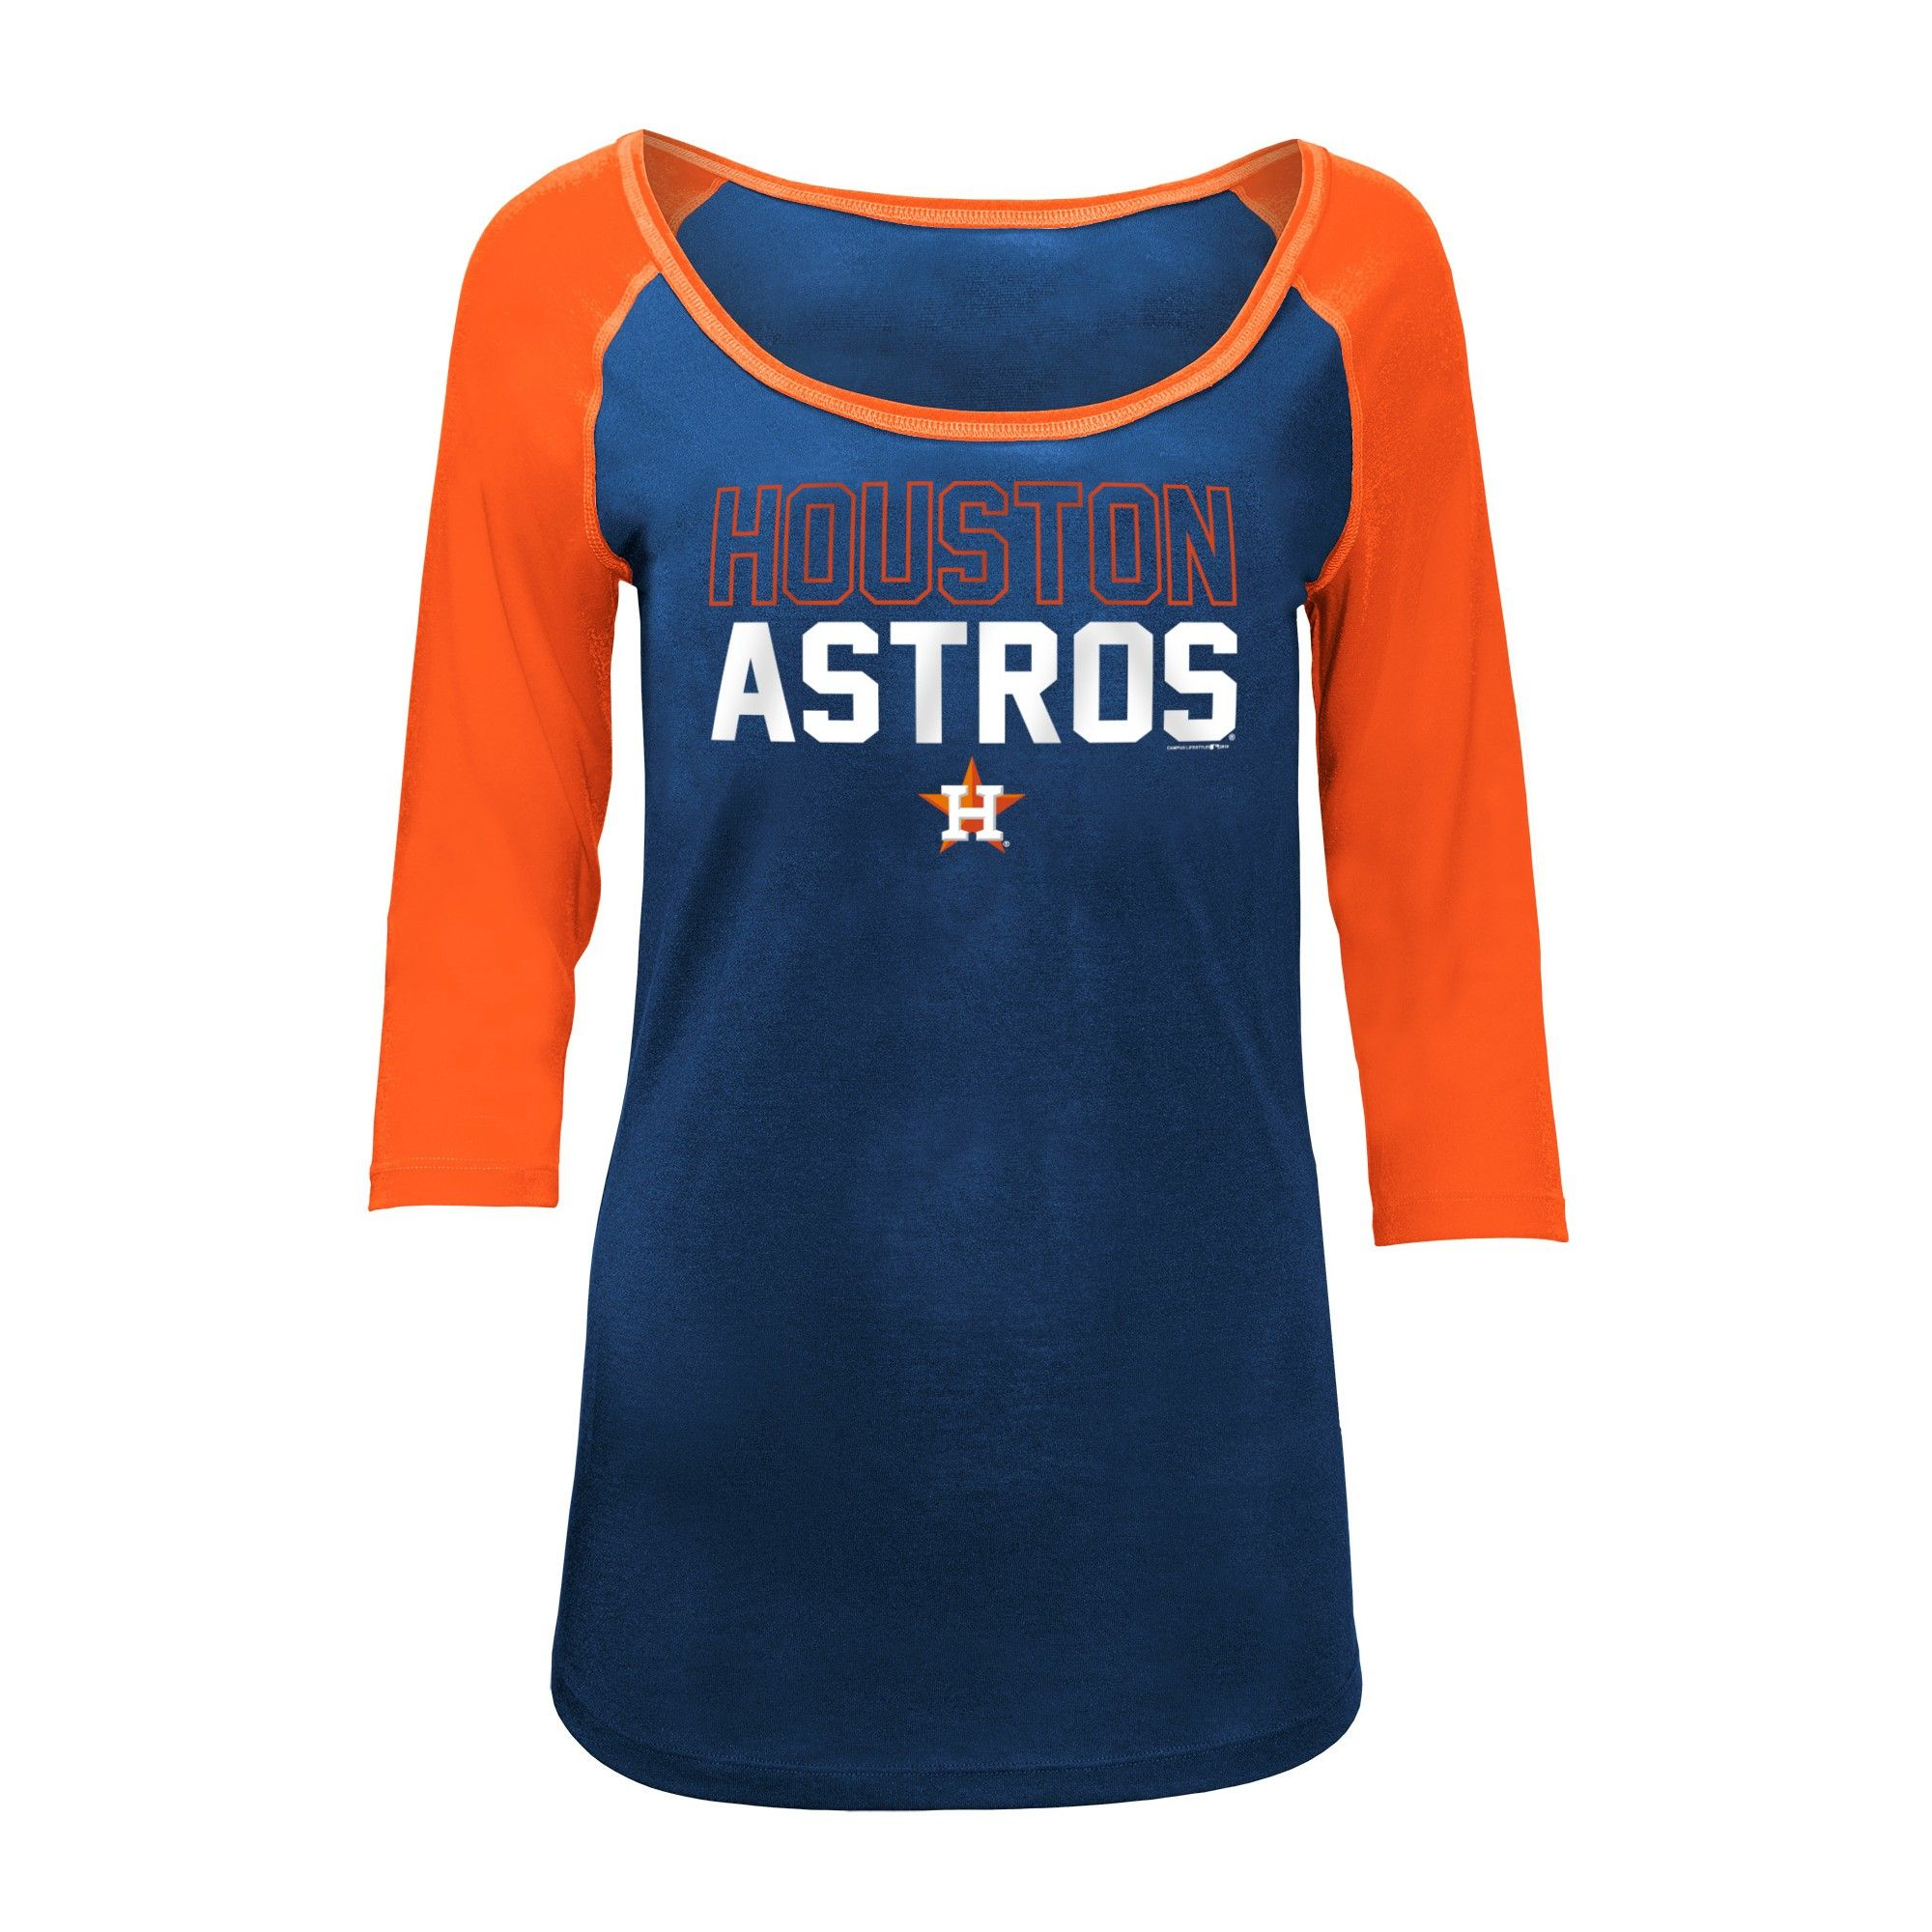 brand new f0b77 fe68c Houston Astros Women's Play Ball Fashion Jersey - M, Size ...